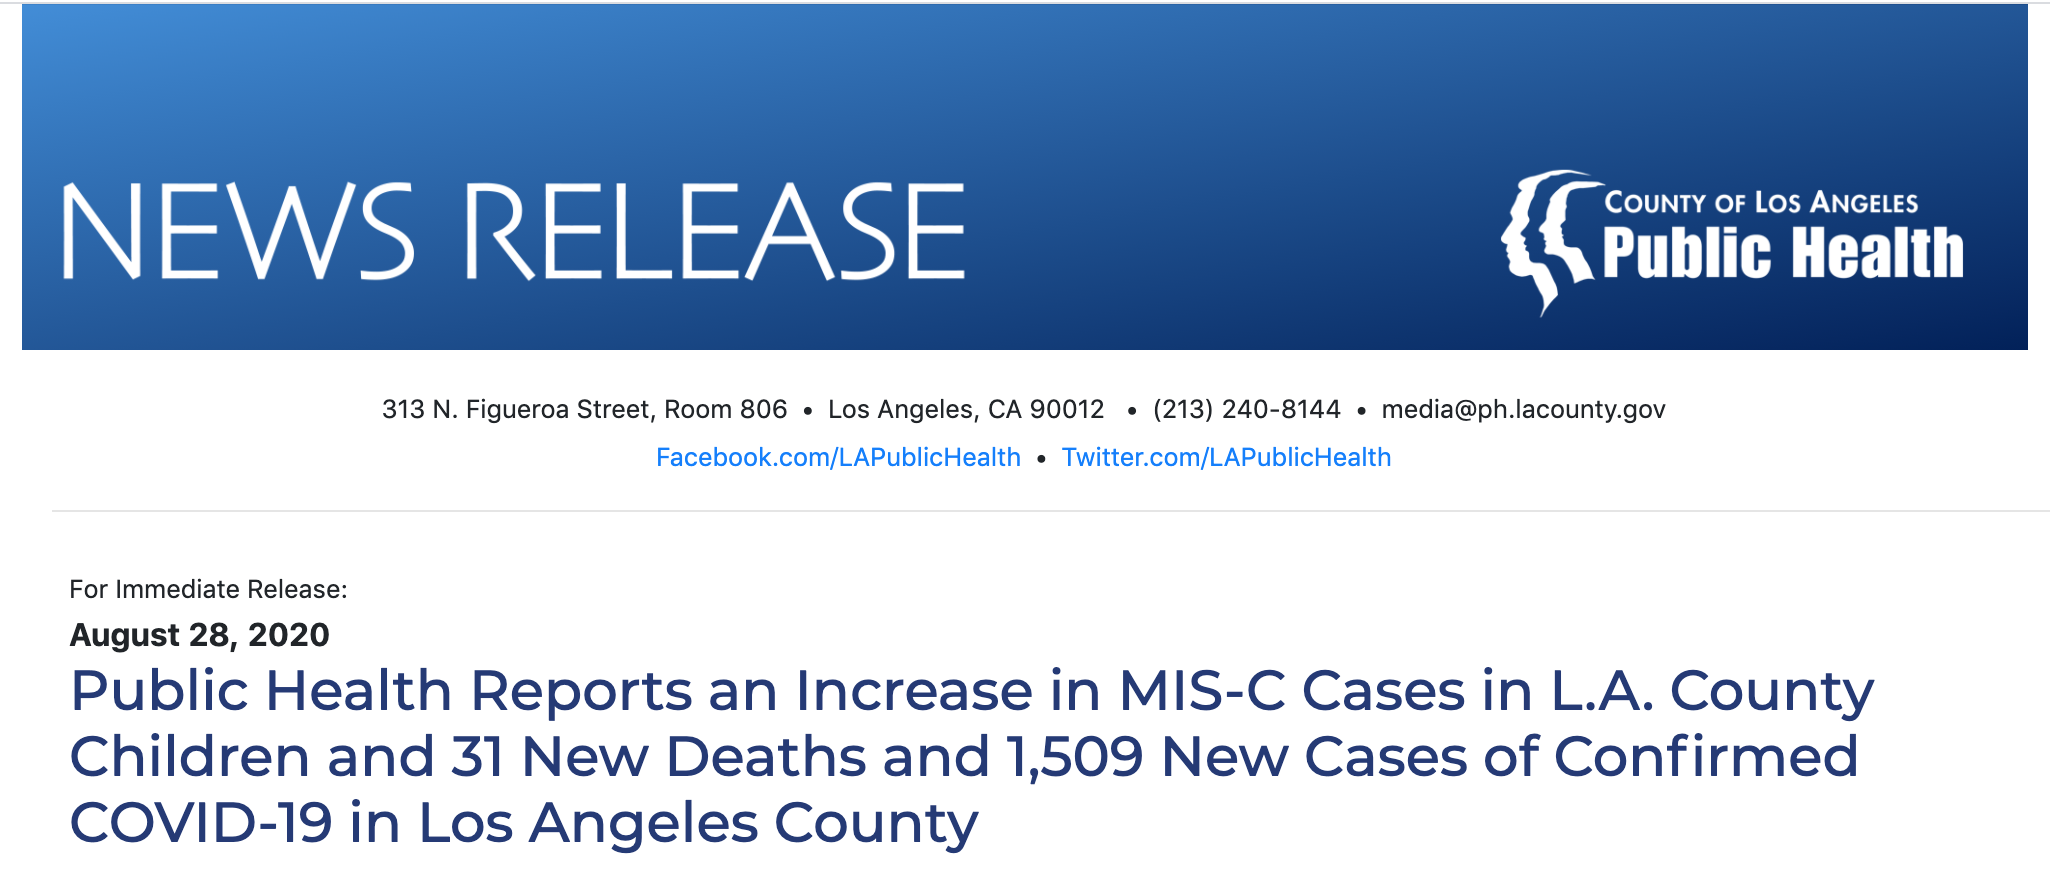 Public Health Reports an Increase in MIS-C Cases in L.A. County Children